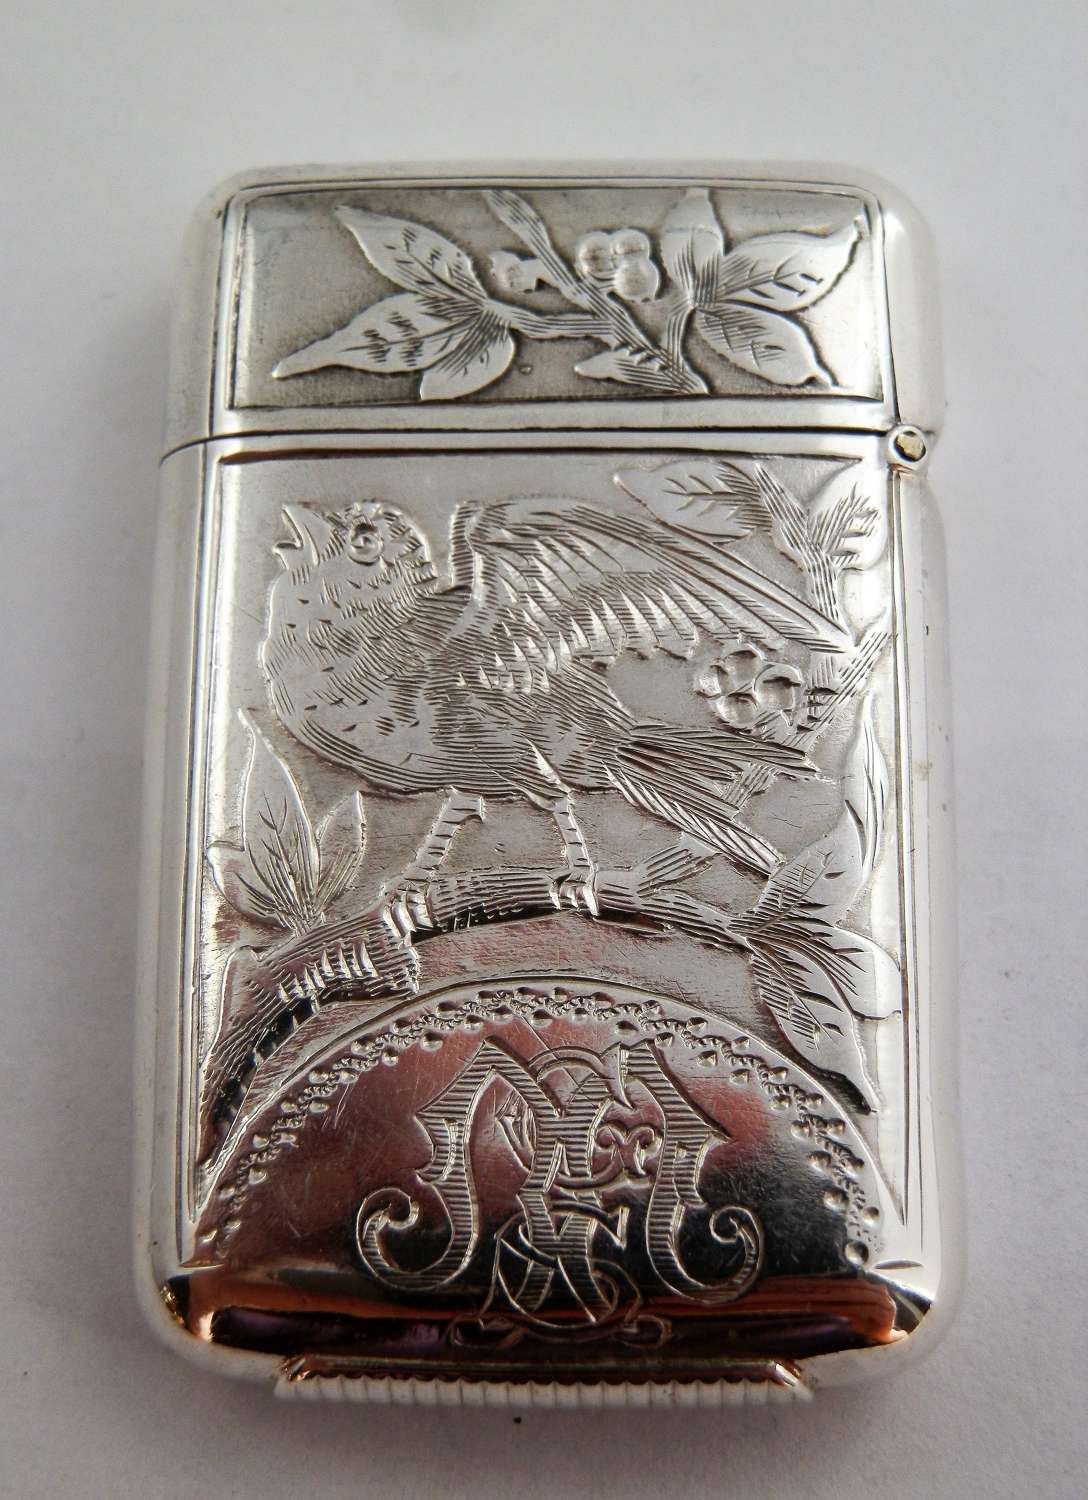 Samson Mordan silver vesta case, London 1881